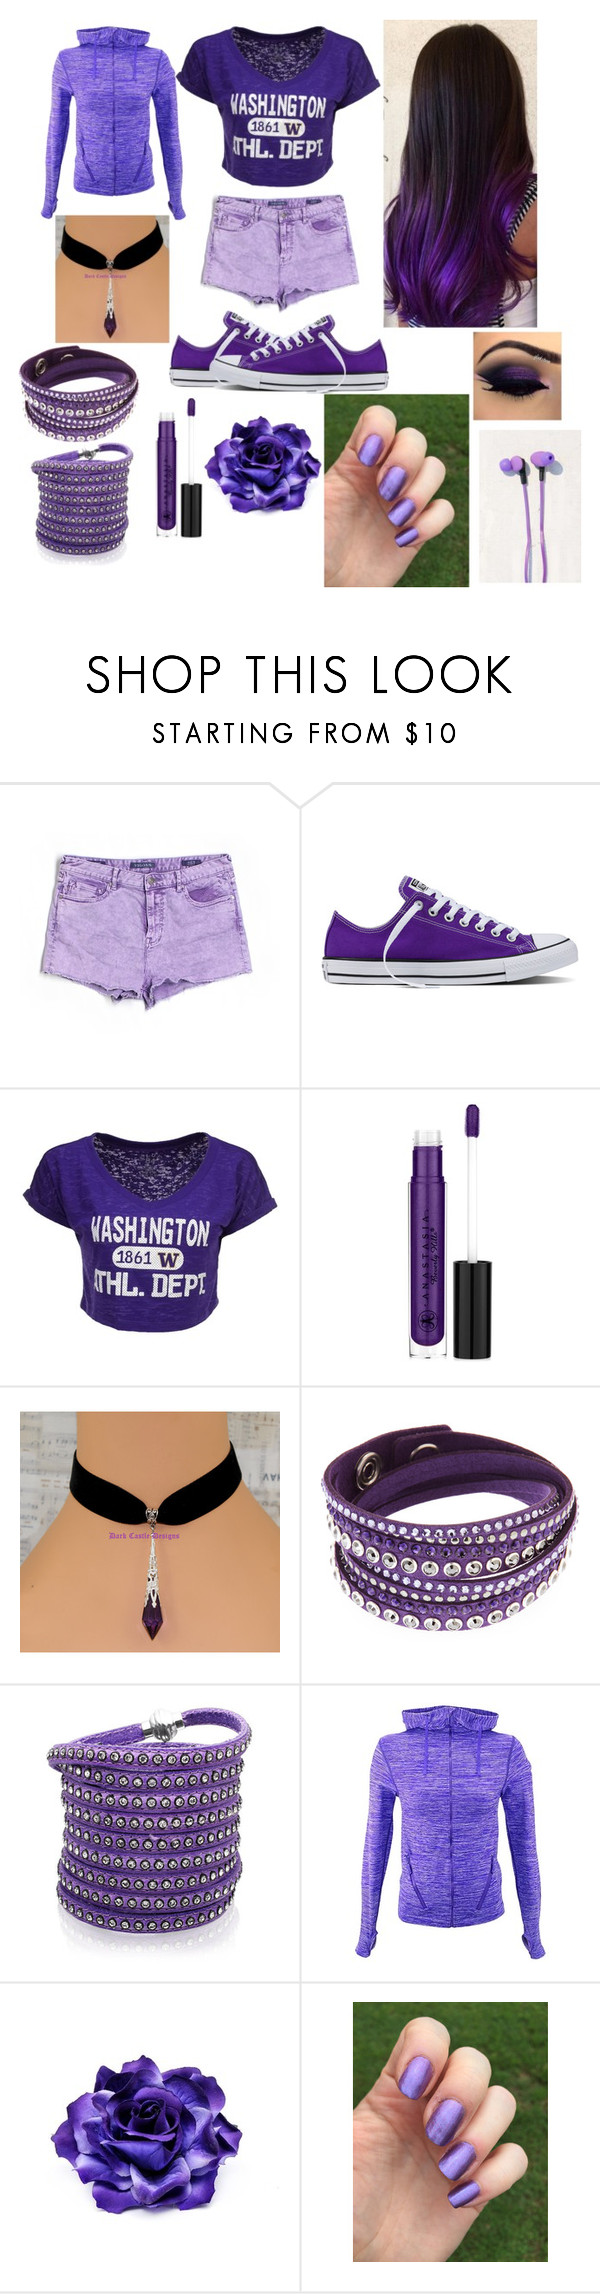 """""""Purple outfit"""" by youtubernerd106 ❤ liked on Polyvore featuring Vigoss, Converse, Blue 84, Anastasia Beverly Hills, Swarovski, Sif Jakobs Jewellery and Urban Outfitters"""